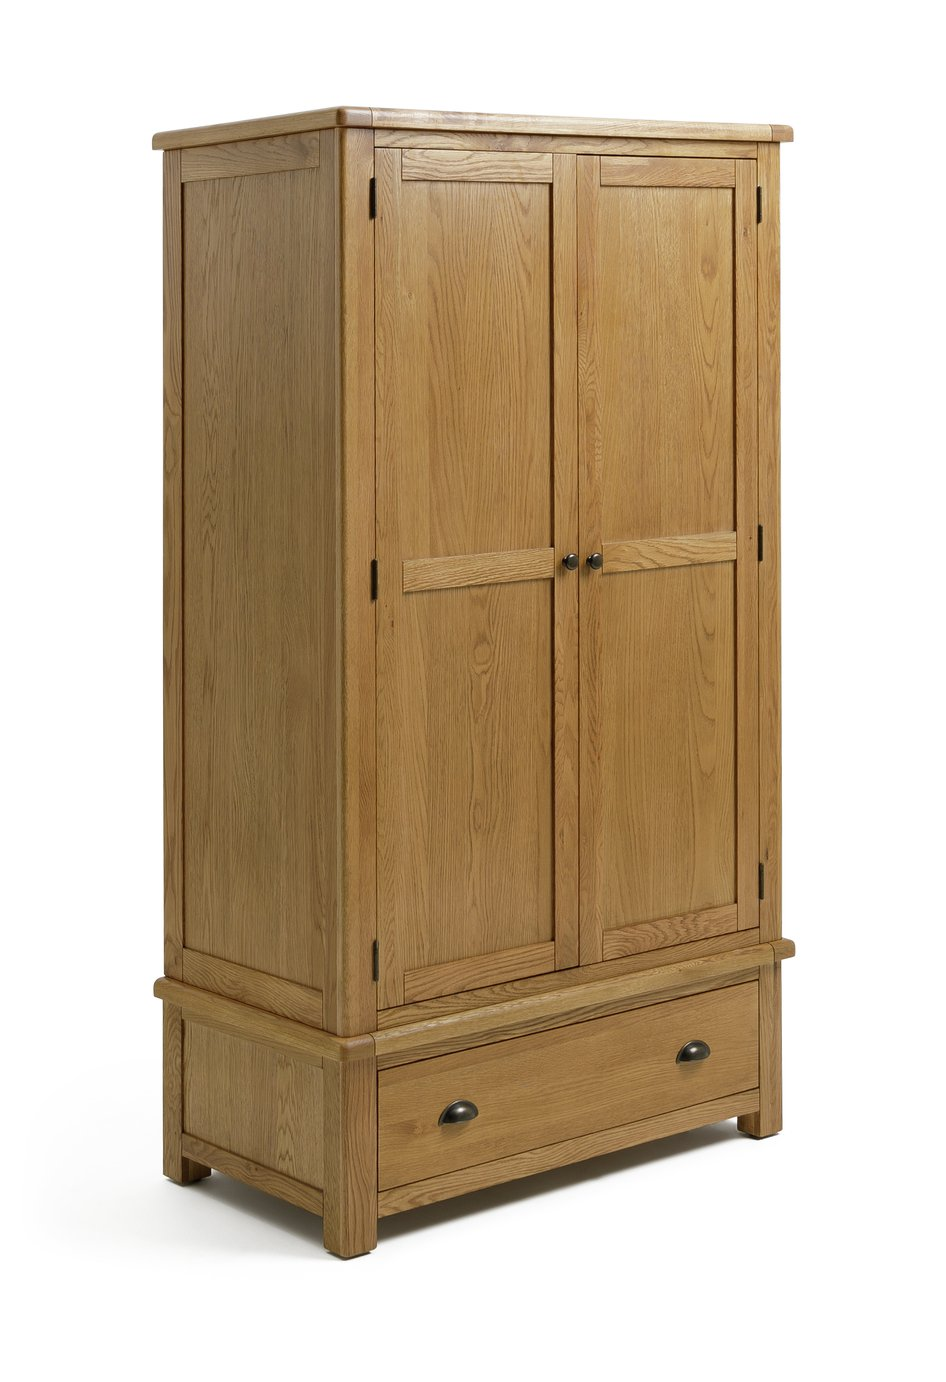 Argos Home Kent 2 Door 1 Drawer Wardrobe